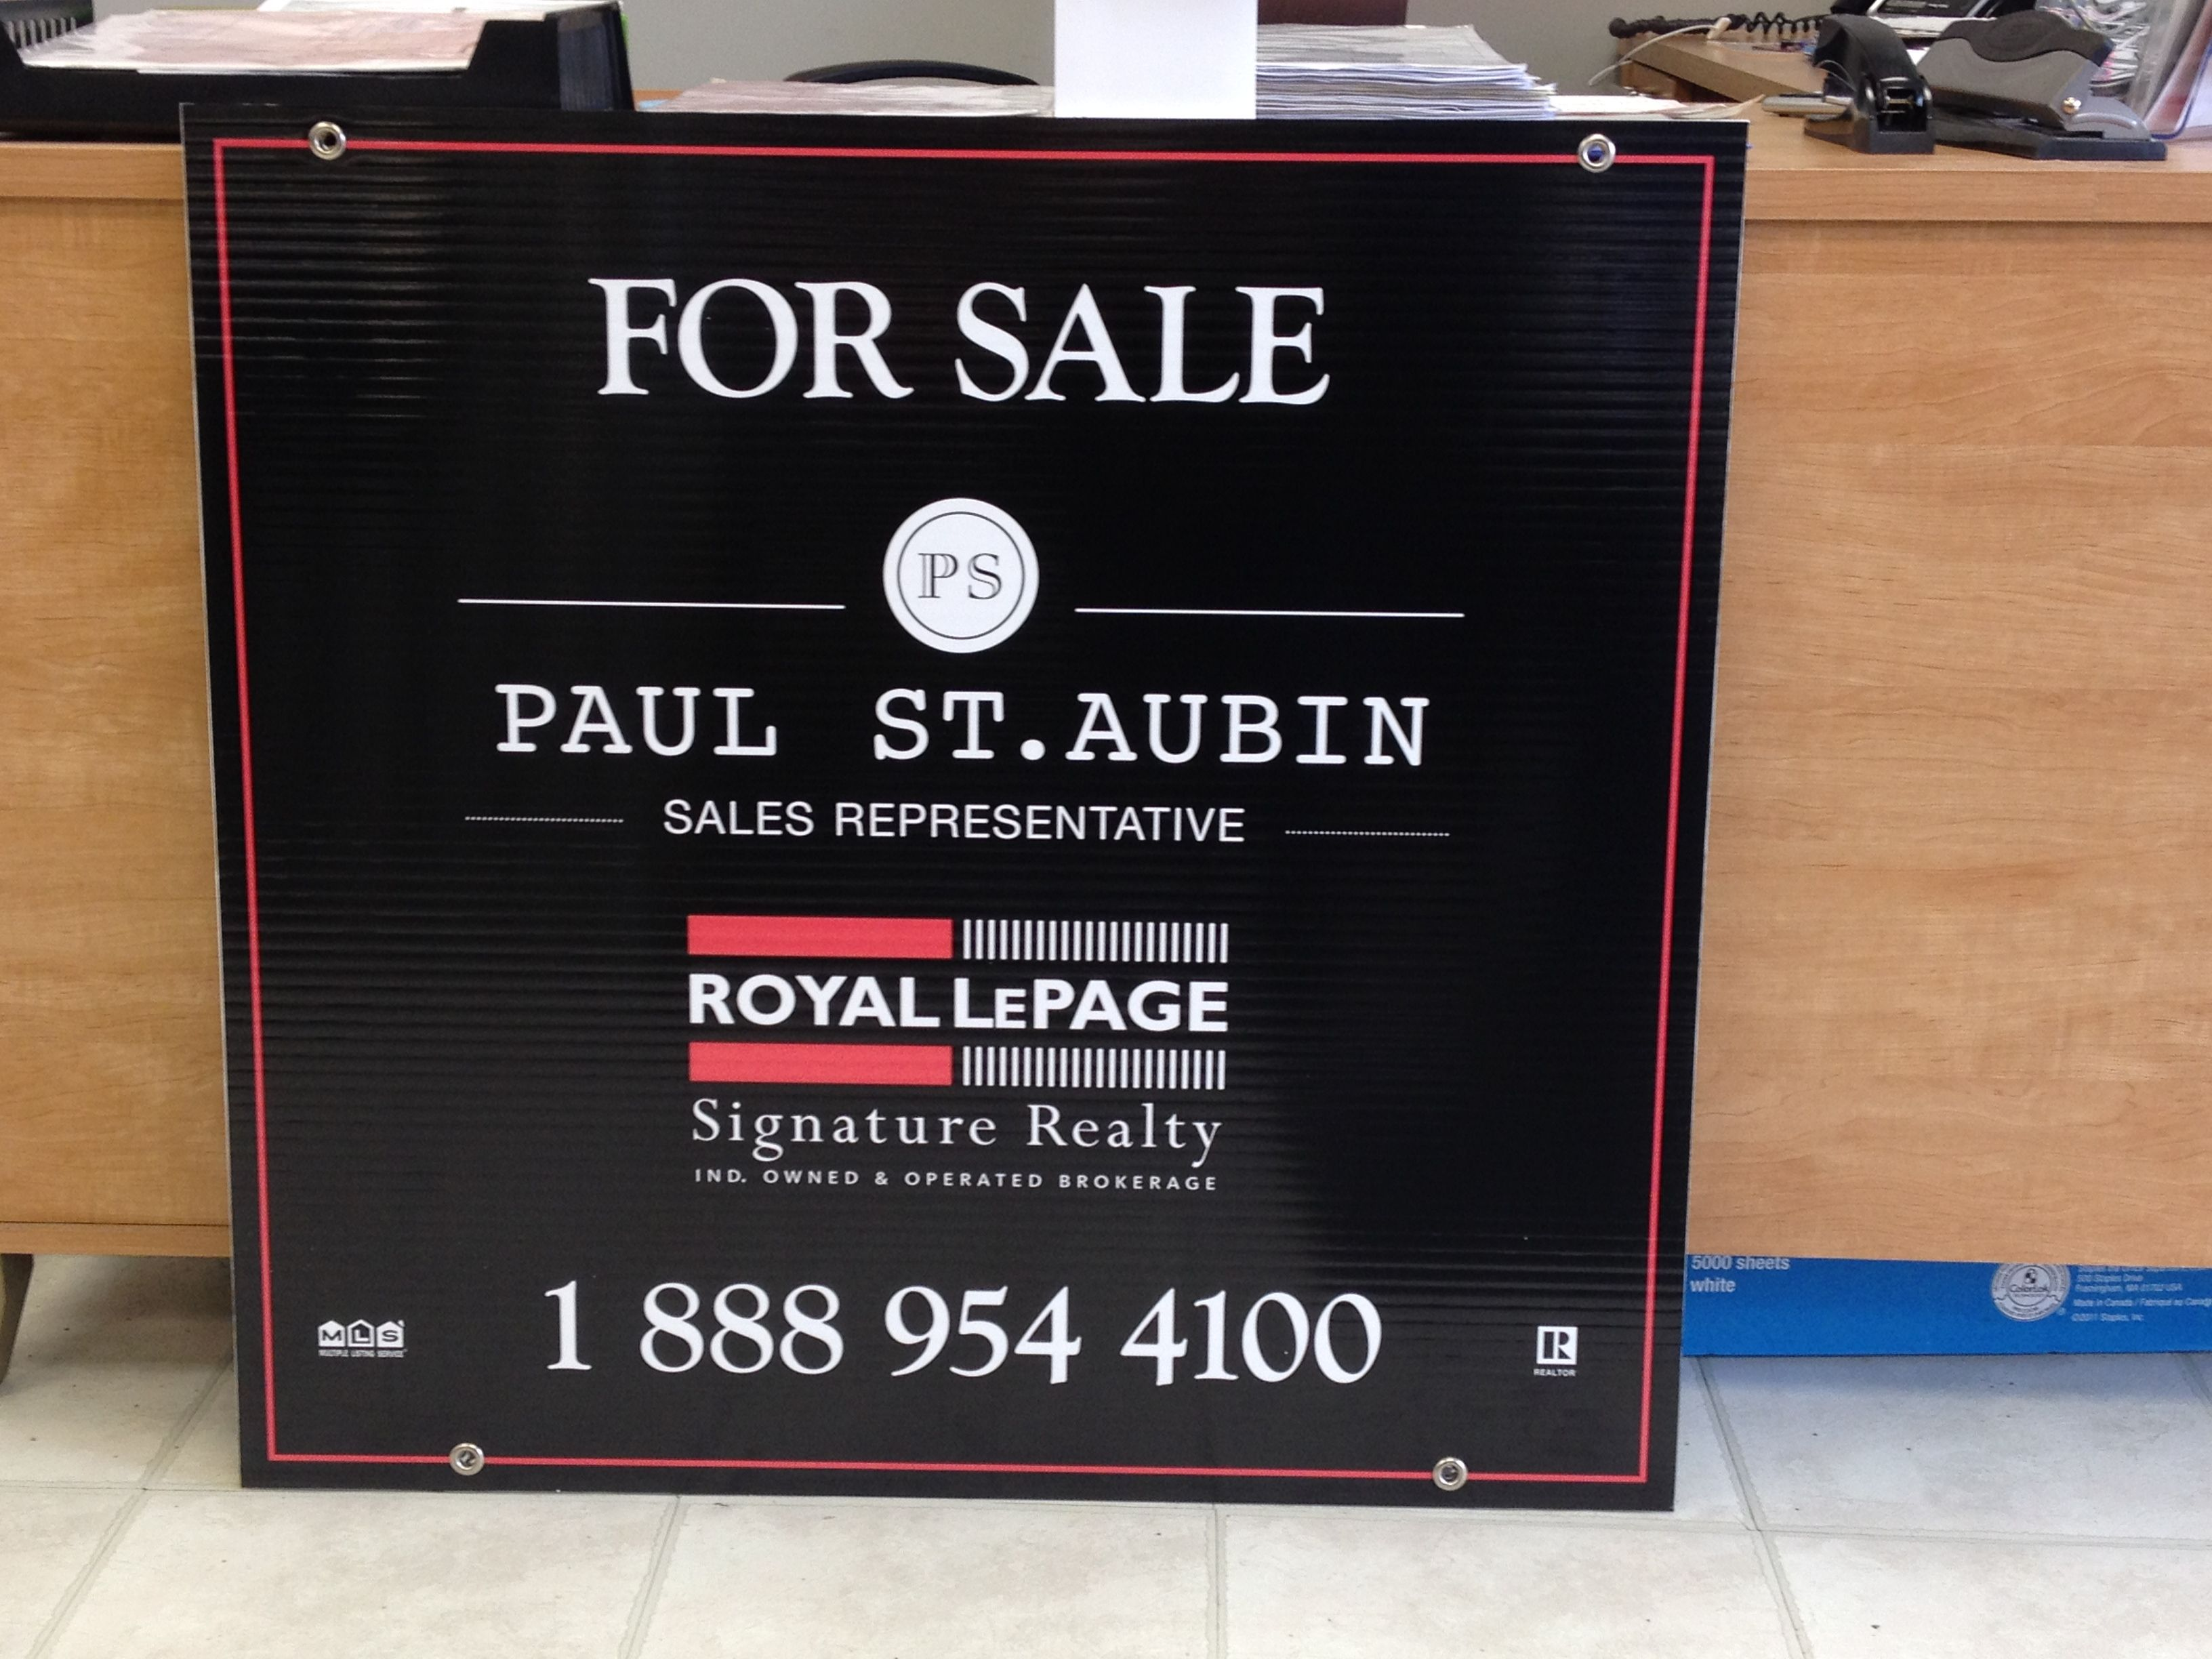 "32x30"" For Sale coroplast sign completed April 2014 for Paul St. Aubin at Royal LePage."